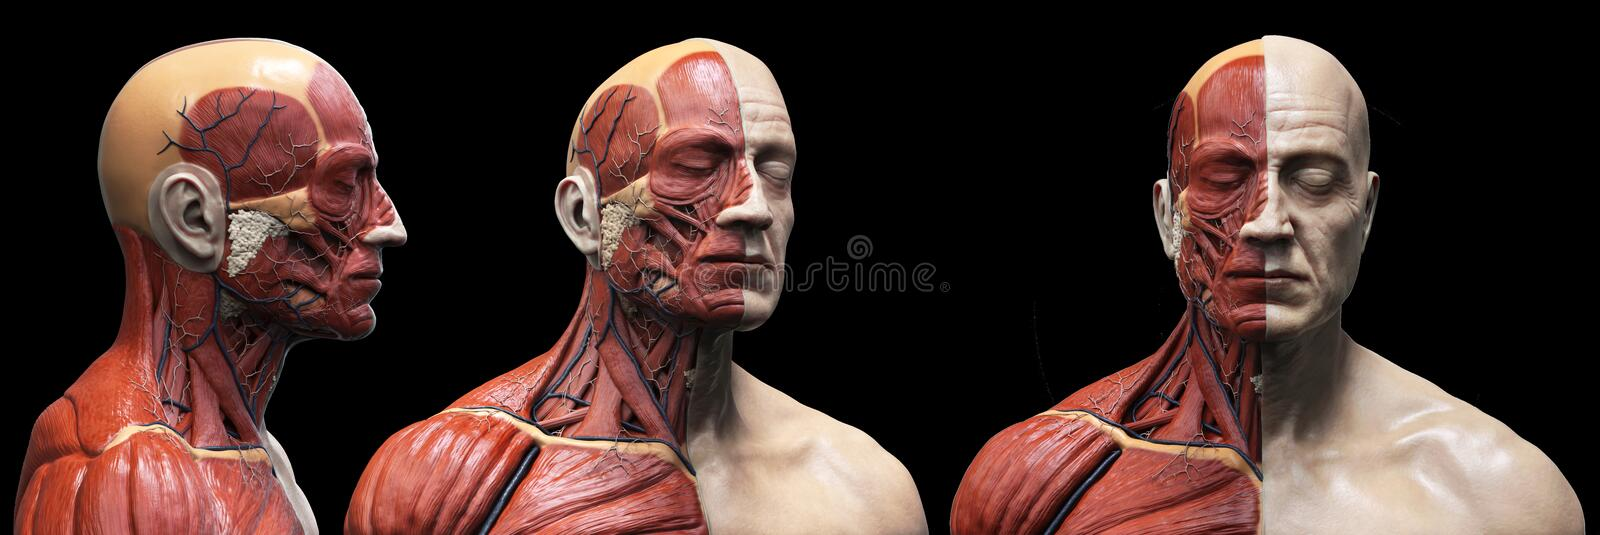 Human body anatomy muscles structure of a male. Front view  side view and perspective , 3d render vector illustration